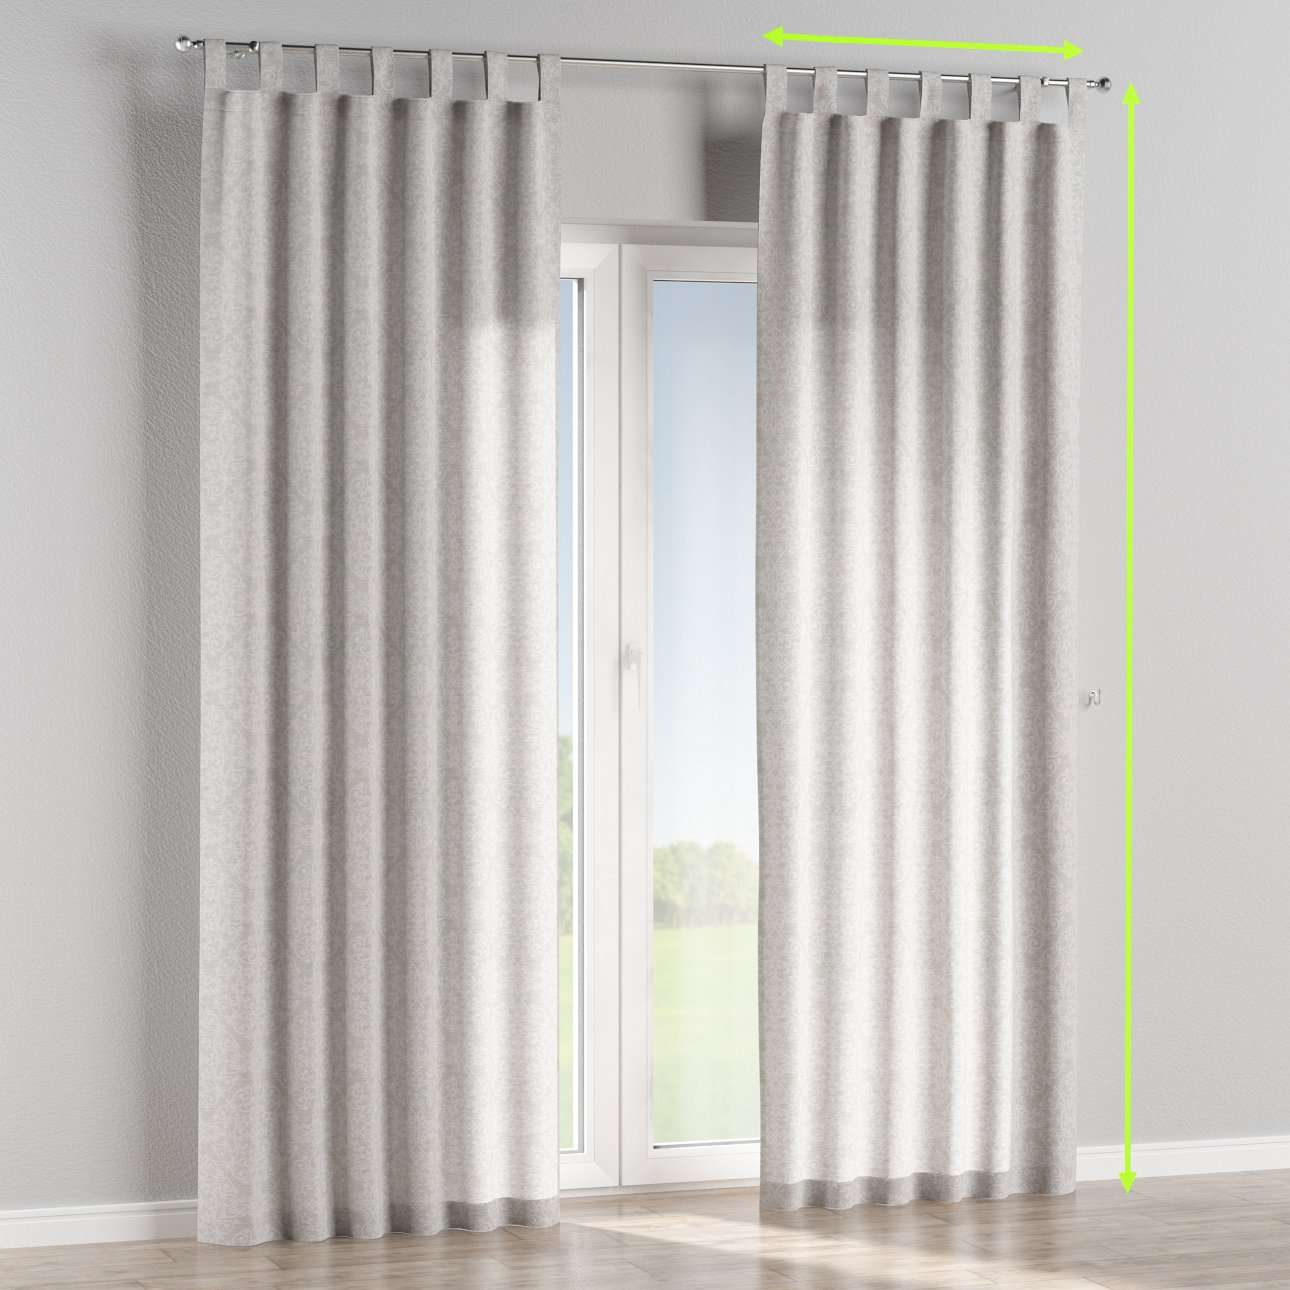 Tiebacks Pair Brand New Curtains & Pelmets Bright Oxford Check Lined Curtains Home, Furniture & Diy